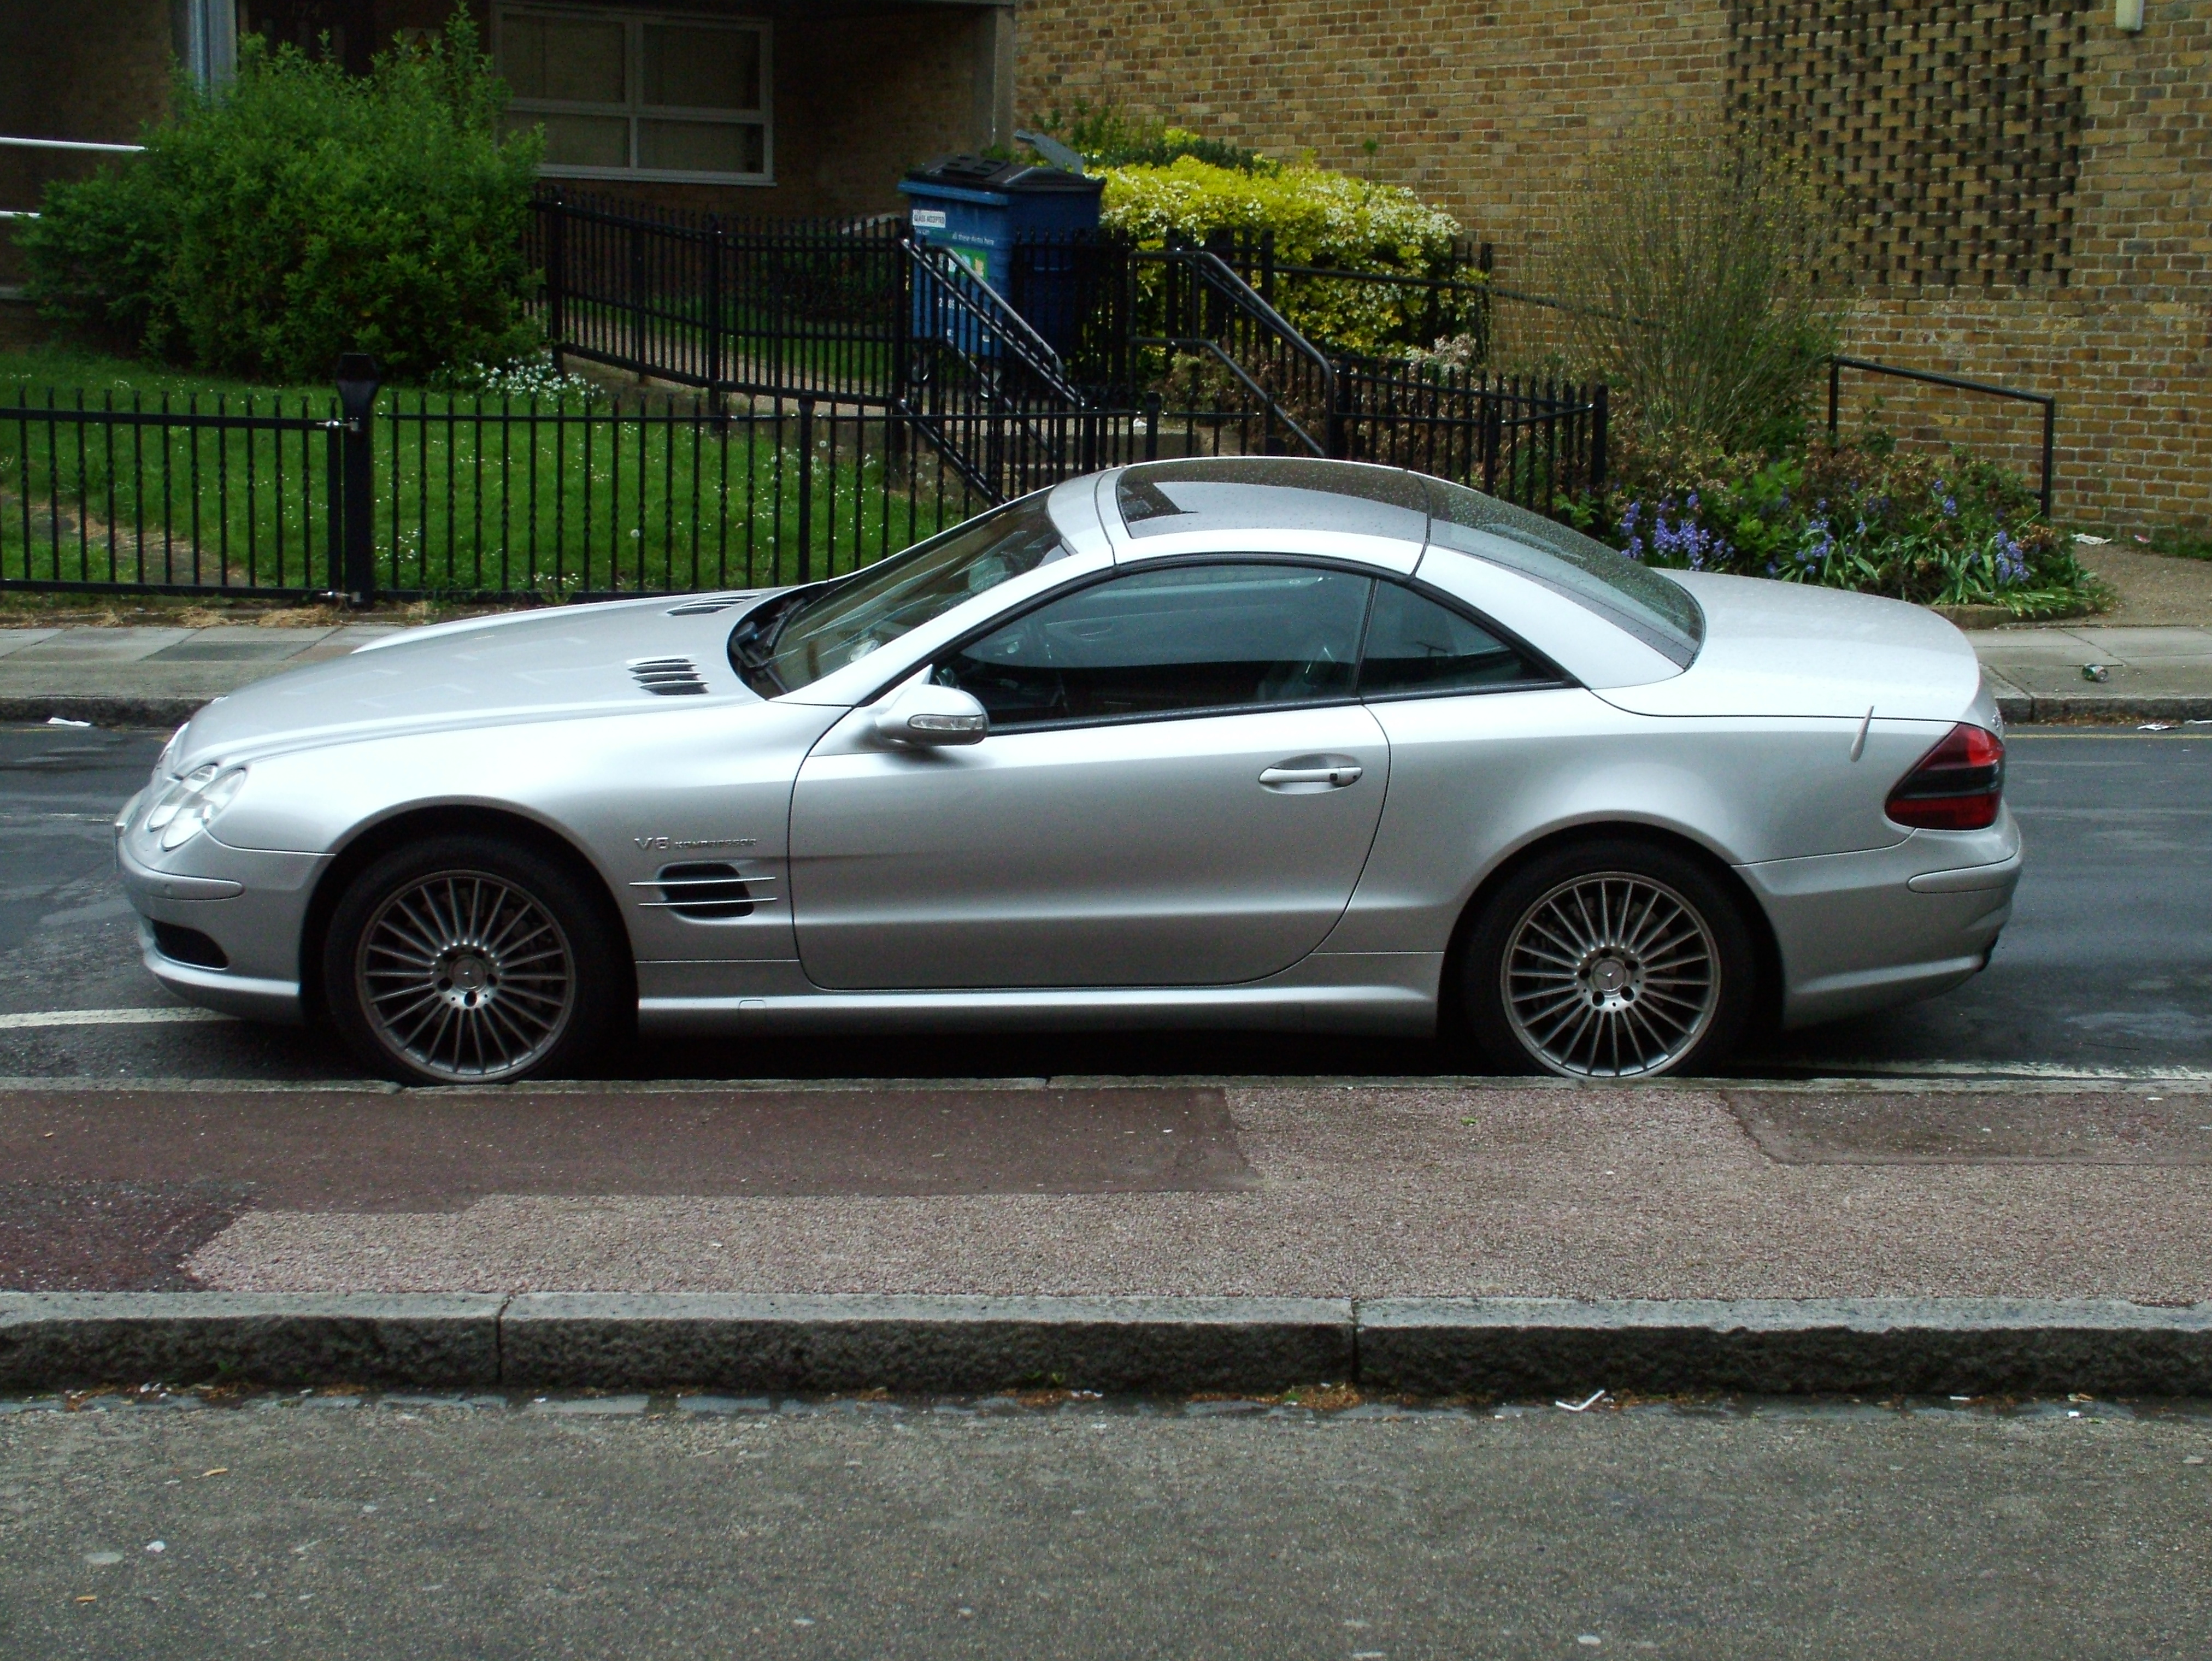 2003 mercedes benz sl55 amg images pictures and videos for 2003 mercedes benz sl55 amg